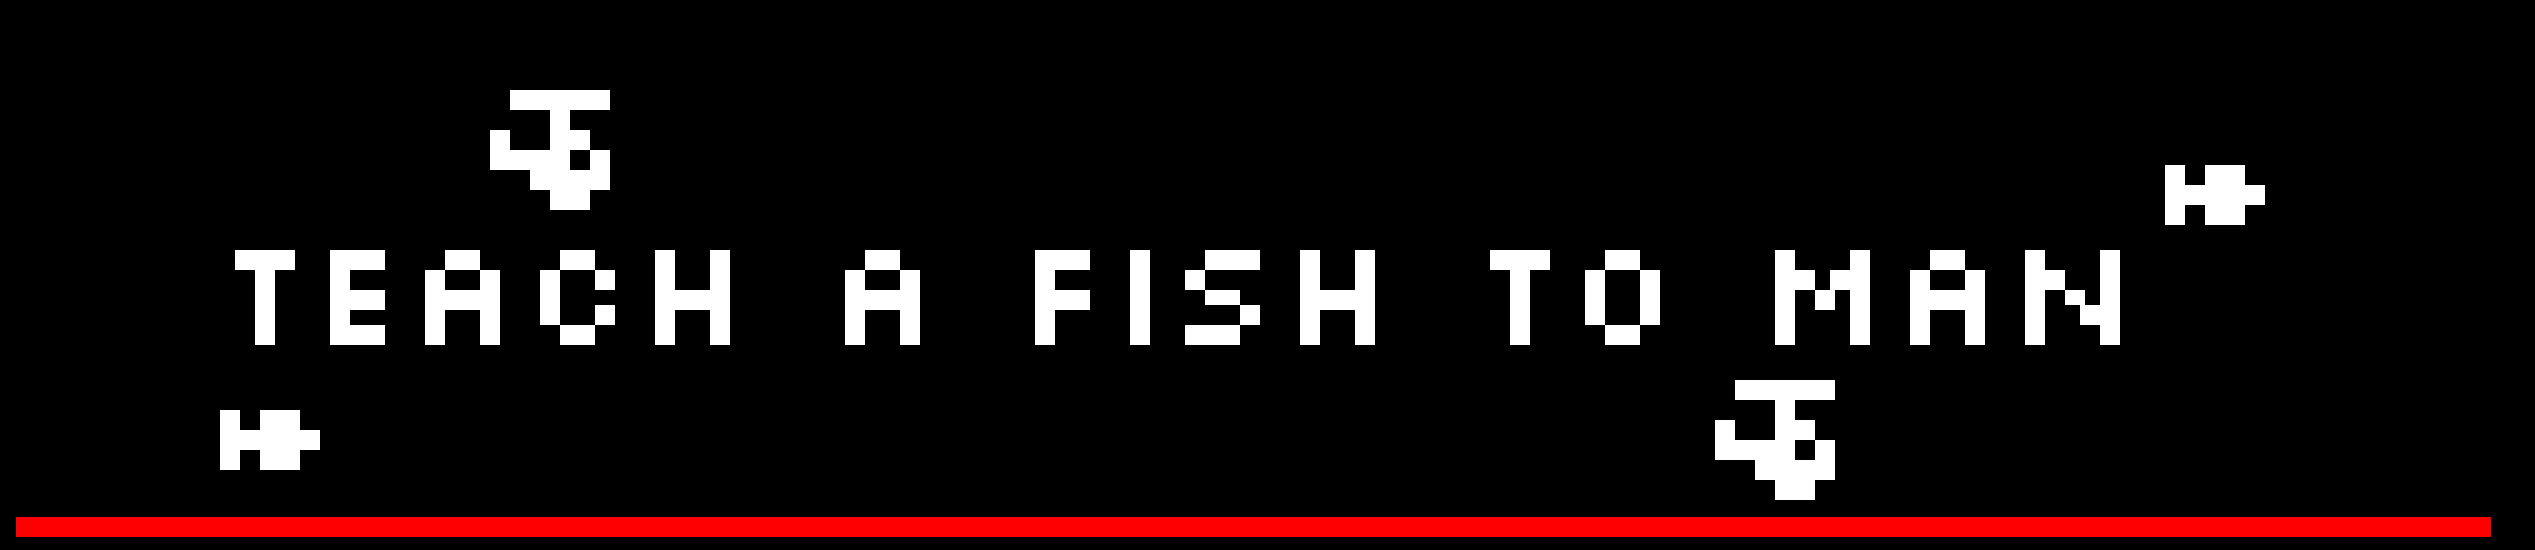 Teach a Fish to Man